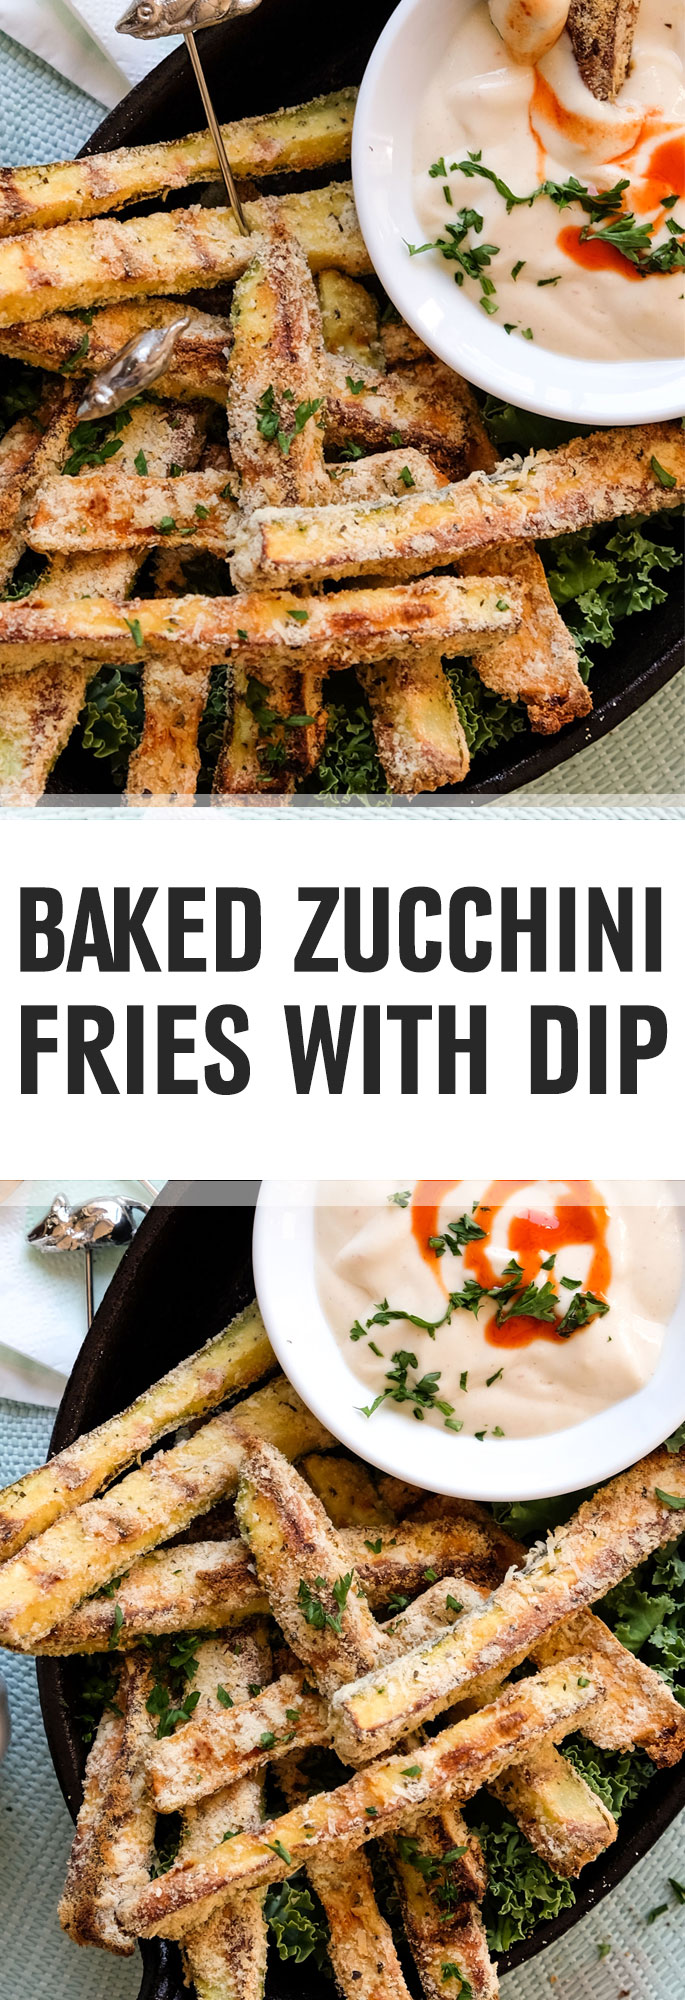 Enticingly delicious finger food without deep-frying. These gluten-free zucchini fries are all about texture, making them crispy but not too heavy with delicately flavored coating. The creamy dip goes especially well with the zucchini fries. Shared via http://www.gluteninsight.com